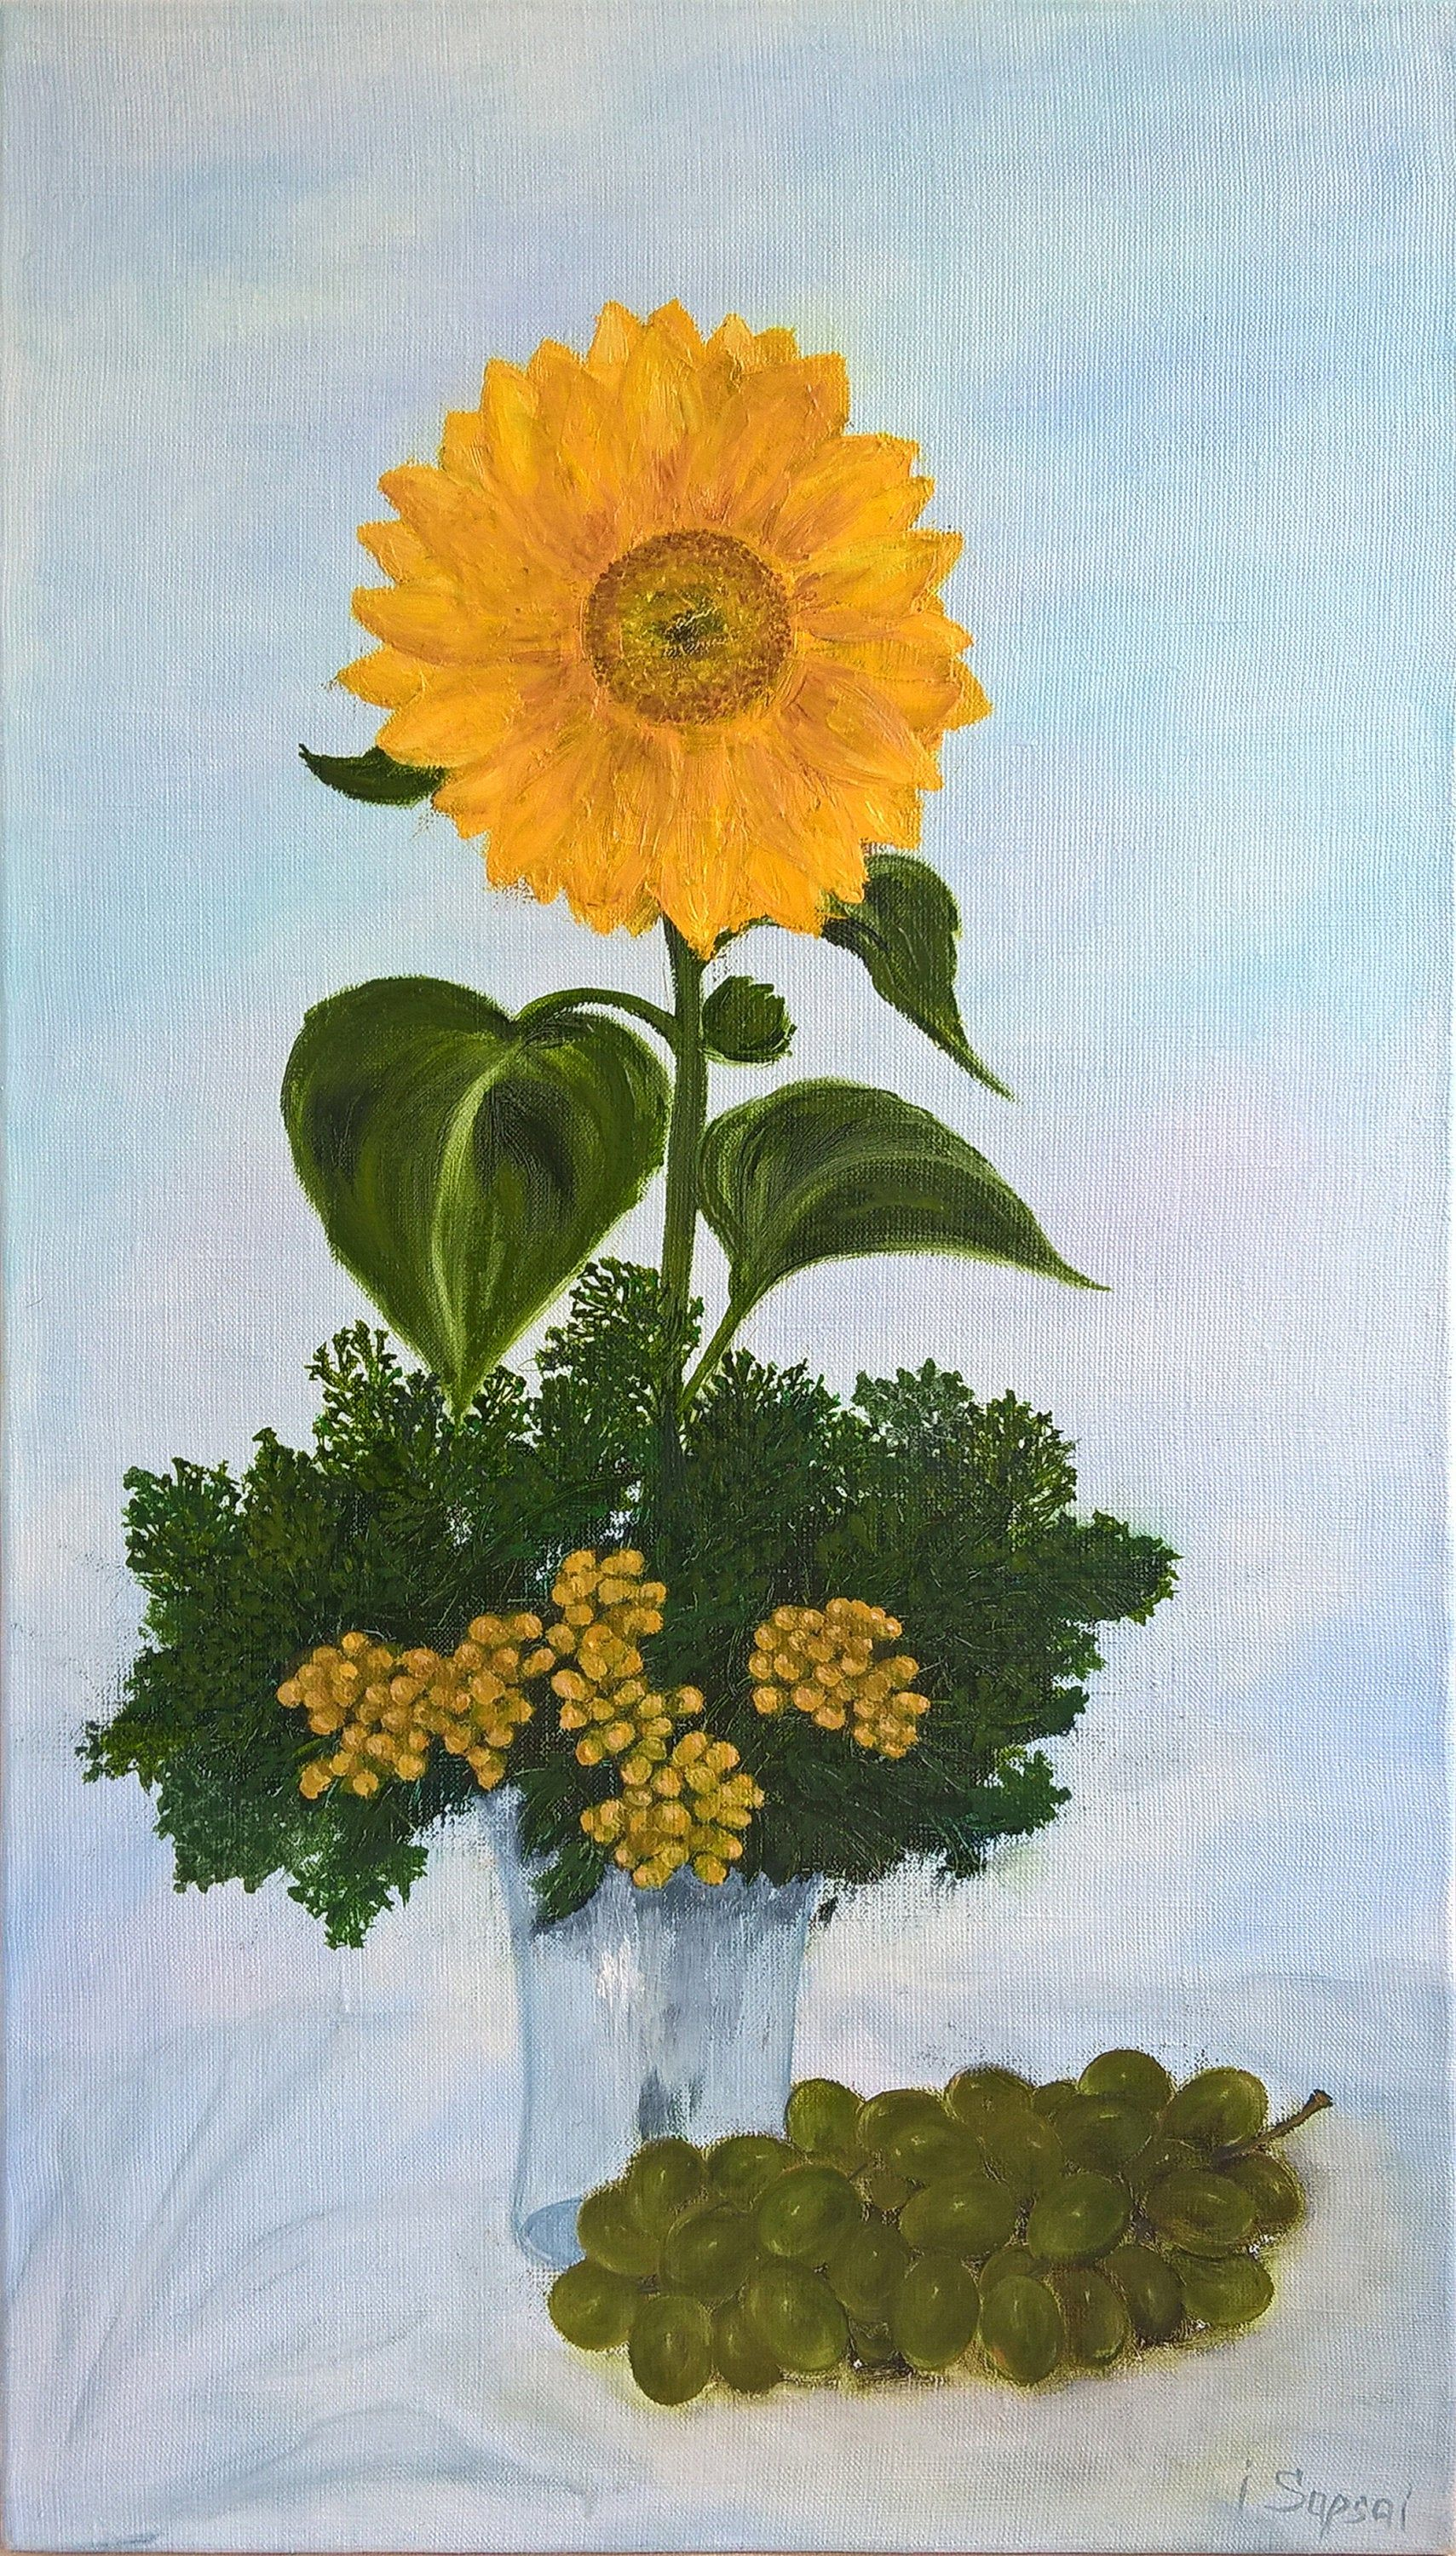 Sunflower Canvas Wall Art Oil Painting Green Grapes Green And Yellow Bouquet Flower Vase Oil Painting On Canvas Green Still Life V 2020 G